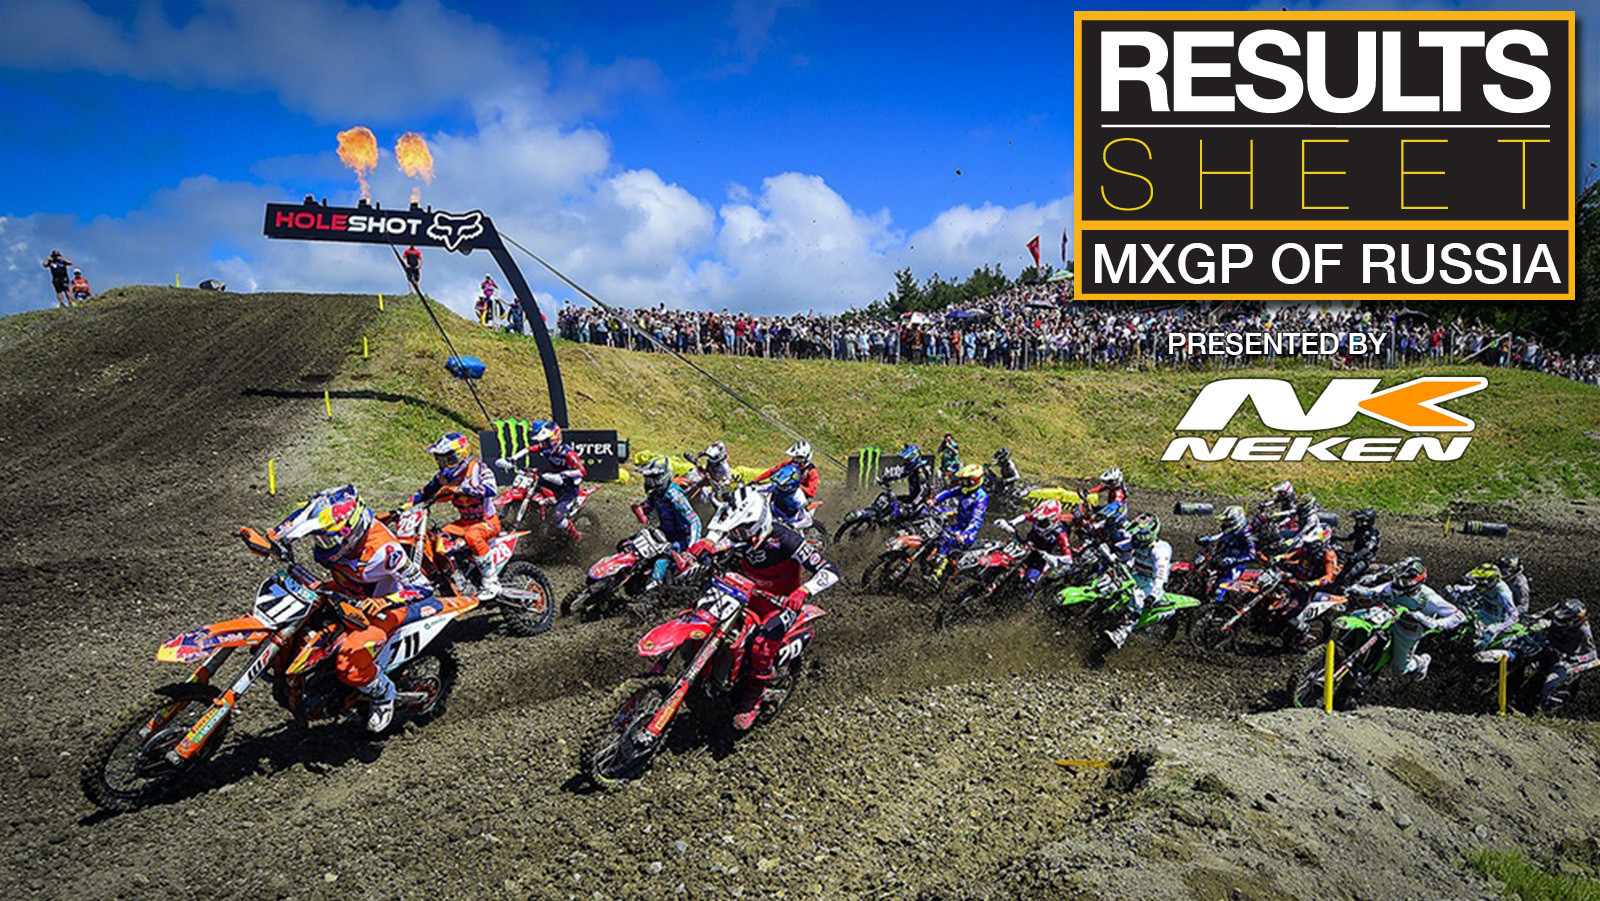 Results Sheet: 2021 MXGP of Russia